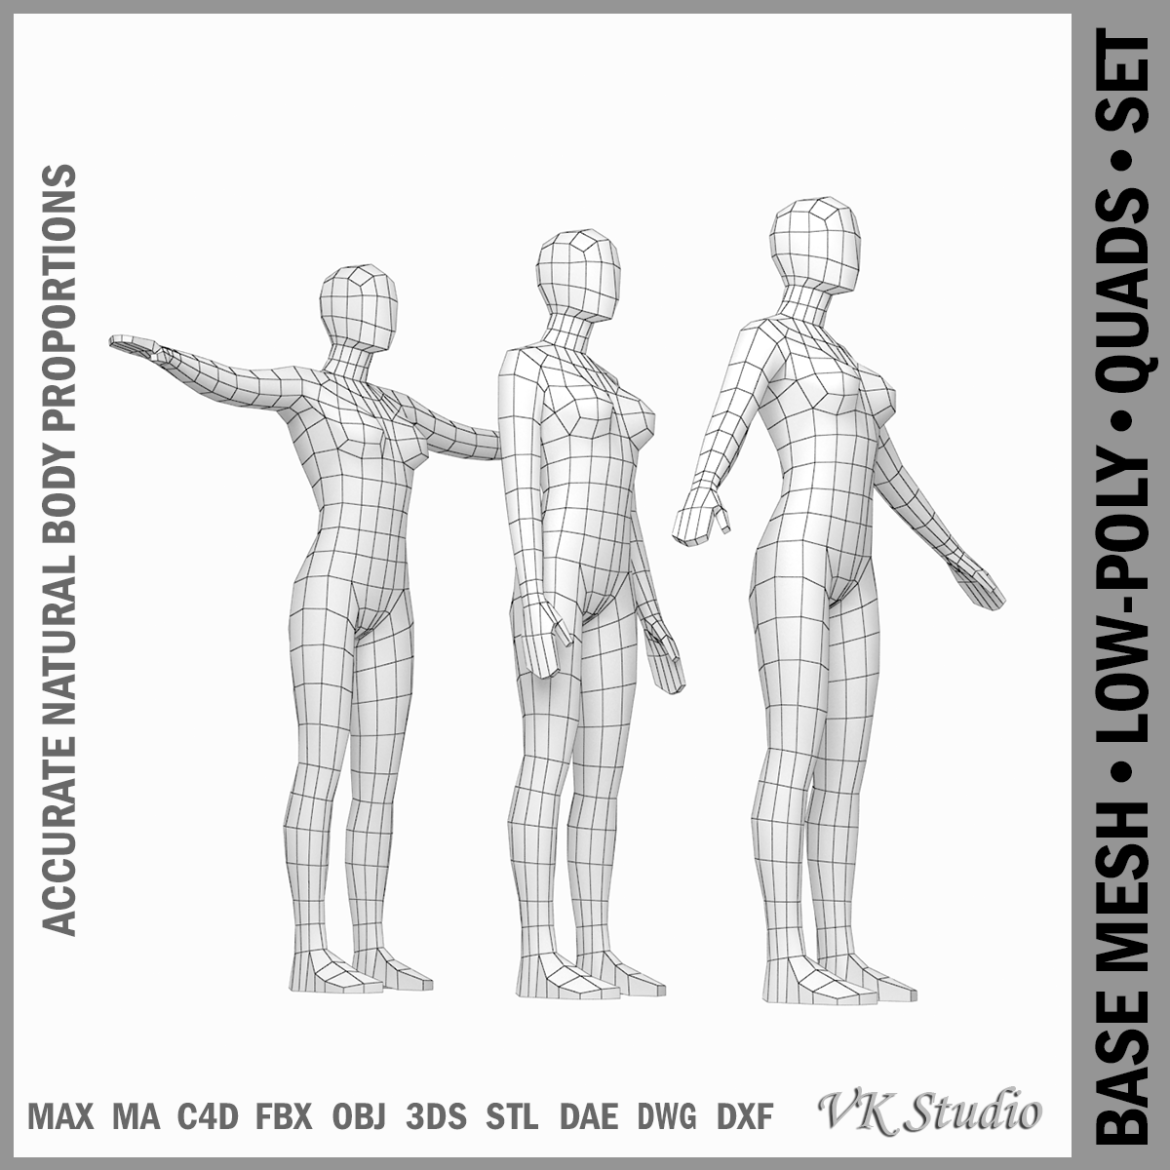 female base mesh in modeling poses 3d model png 3ds c4d dae dwg dxf fbx max ma mb obj stl 304693